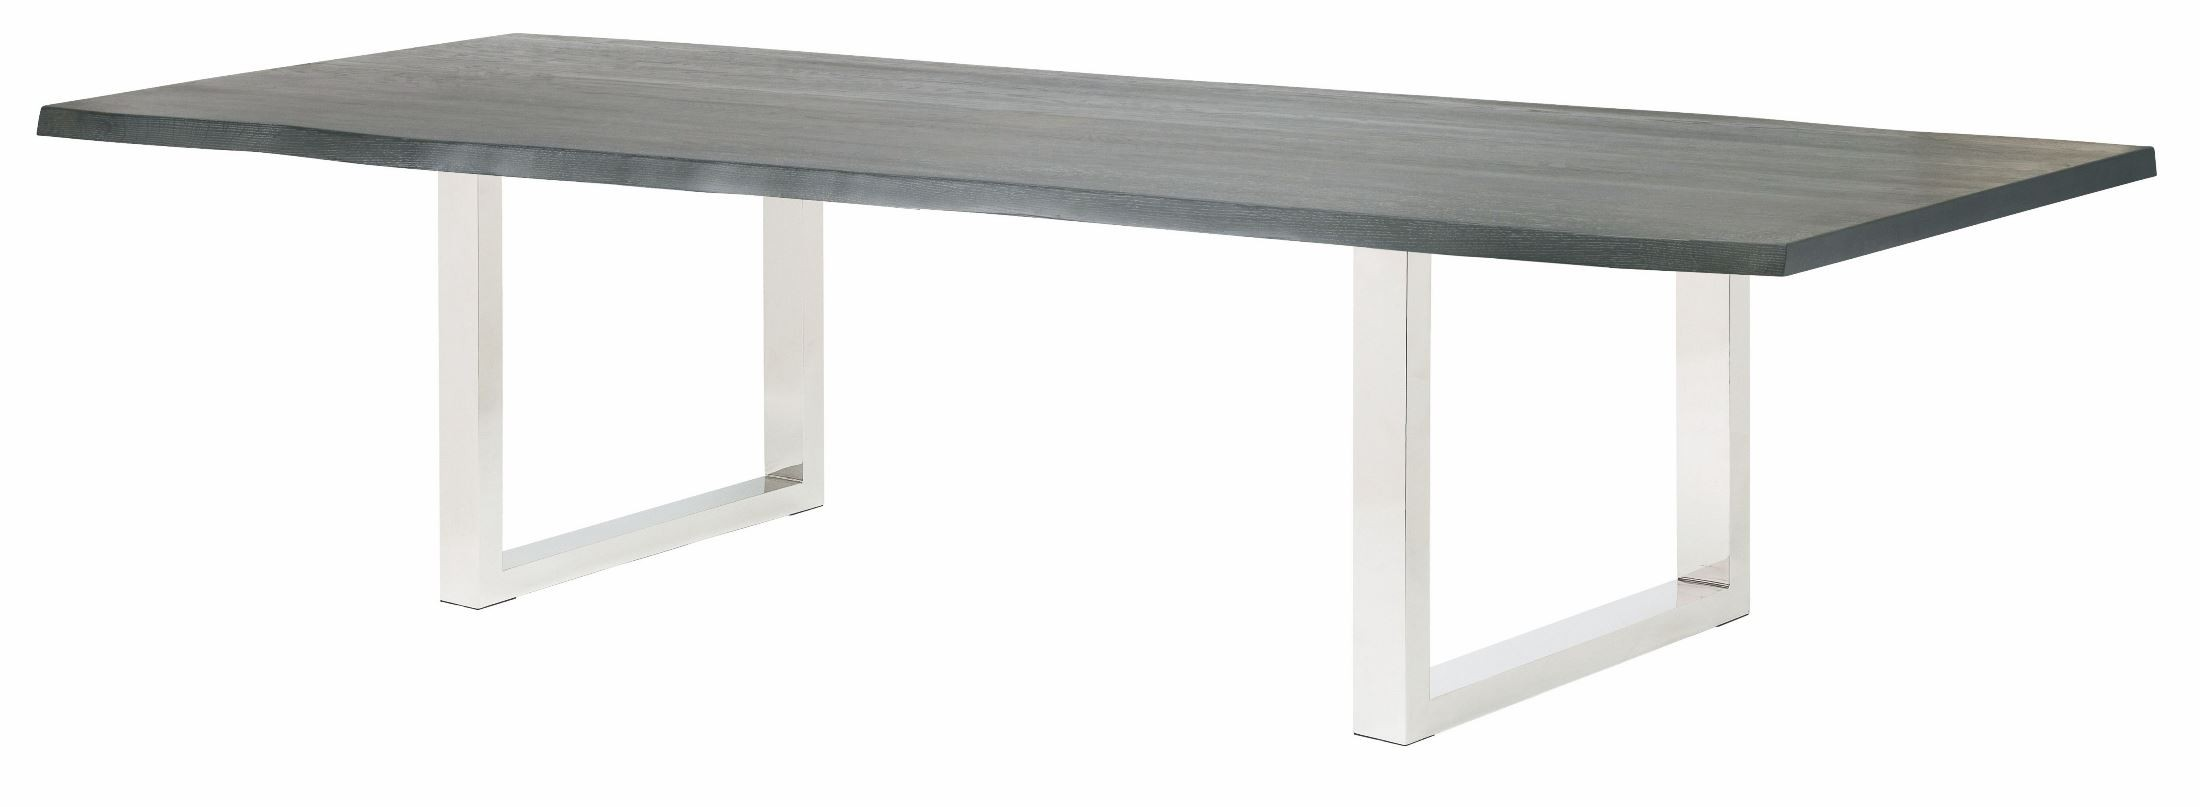 Lyon 112 Quot Oxidized Grey Wood Rectangular Dining Table From